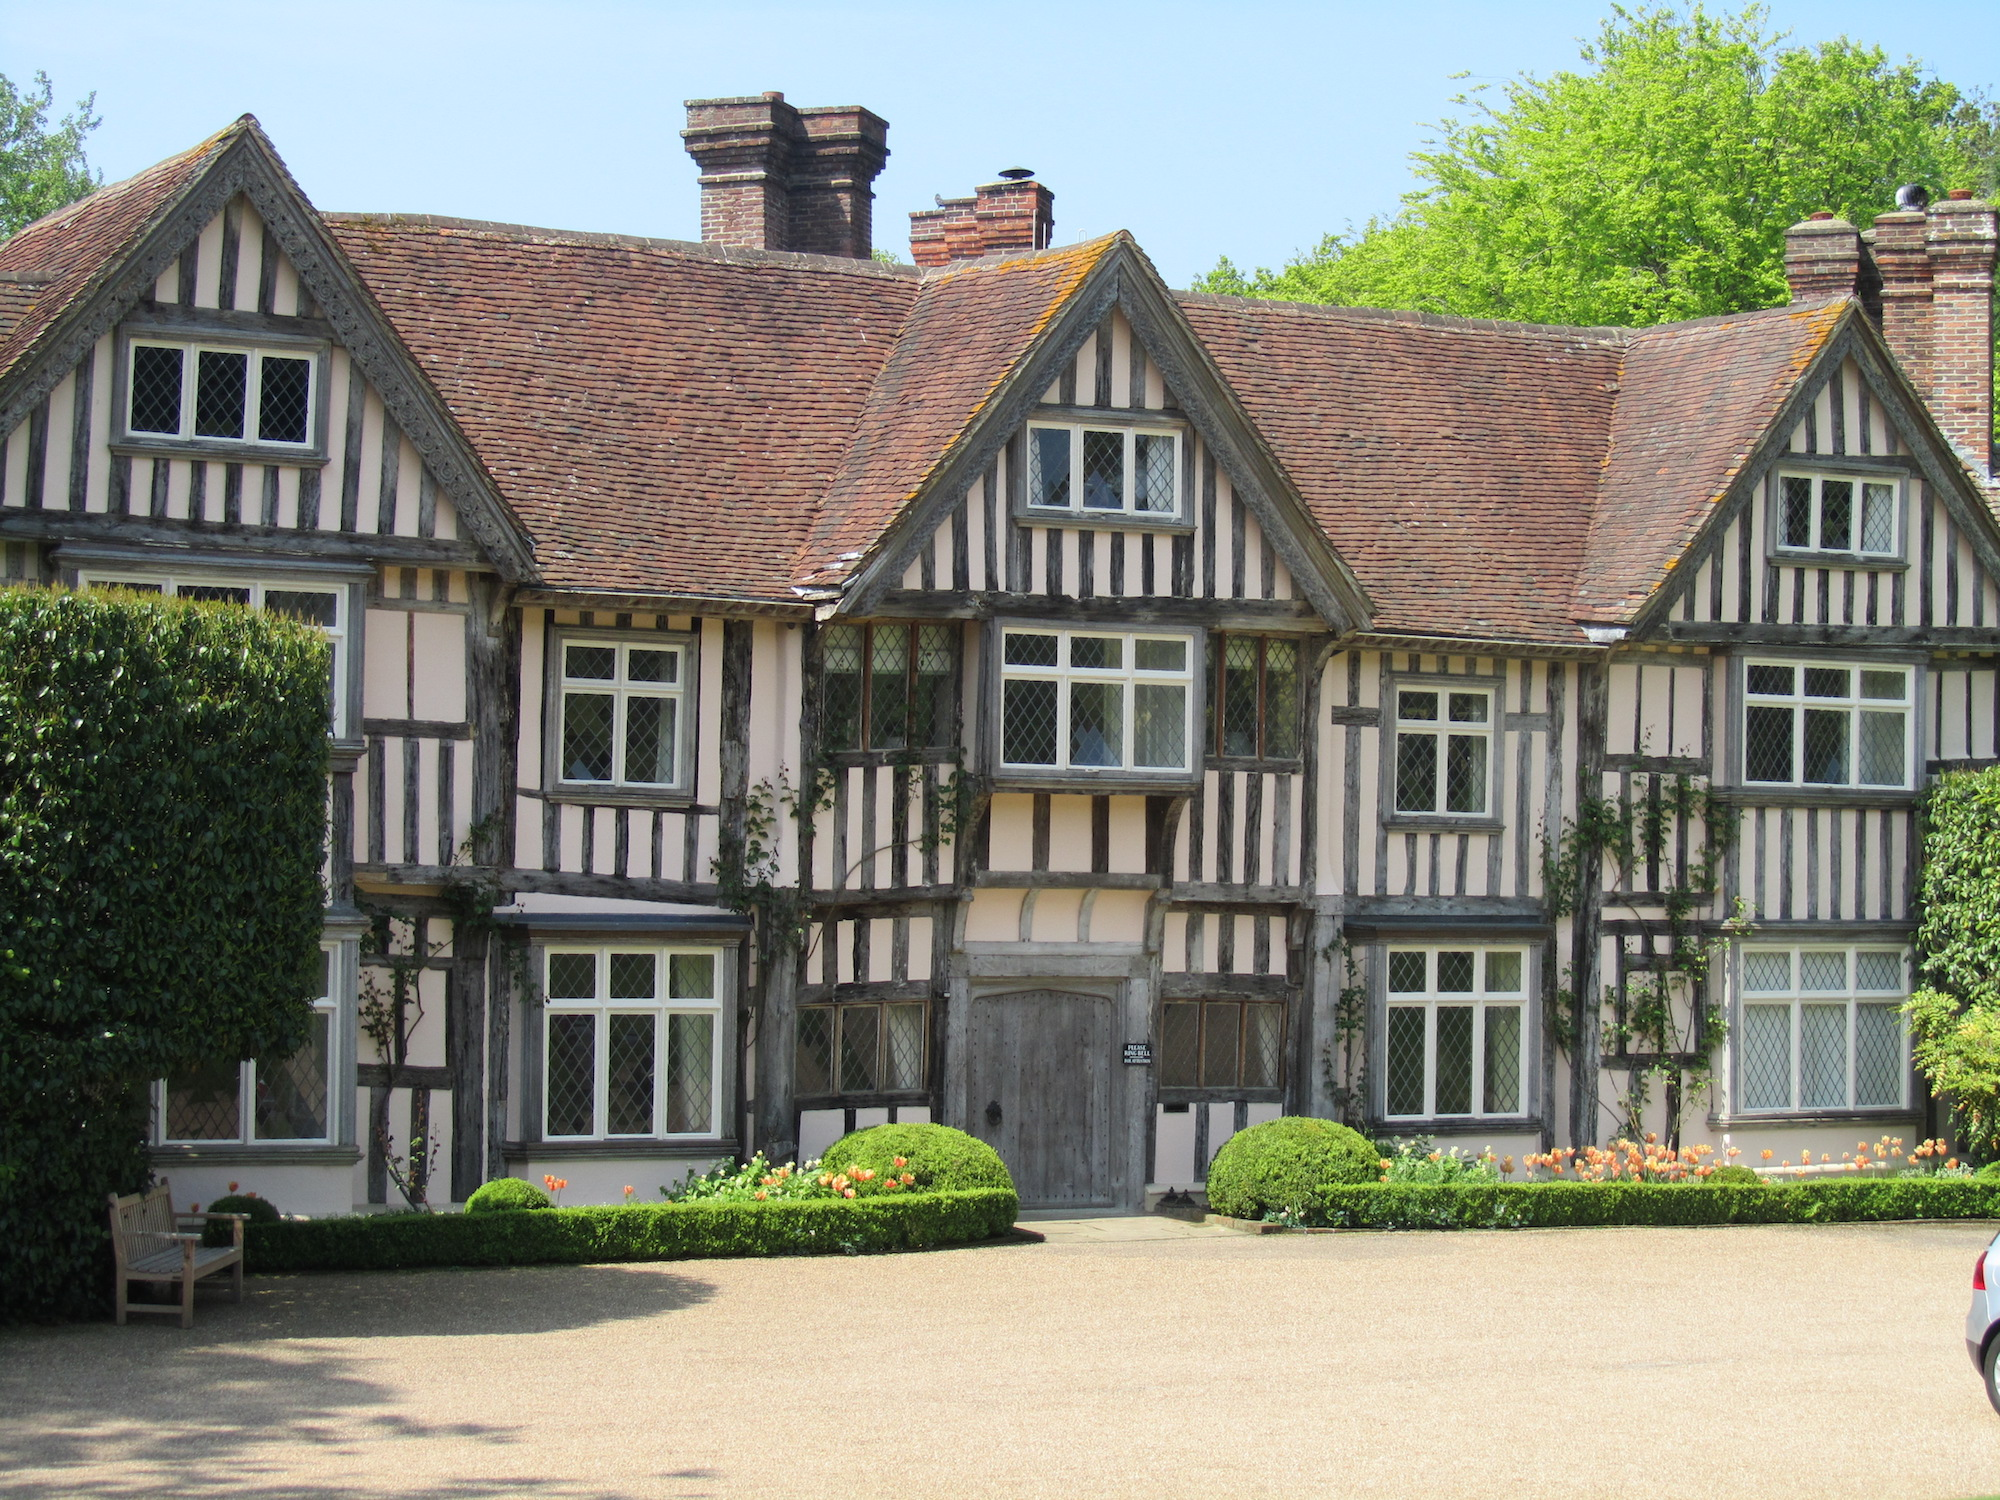 Pashley Manor